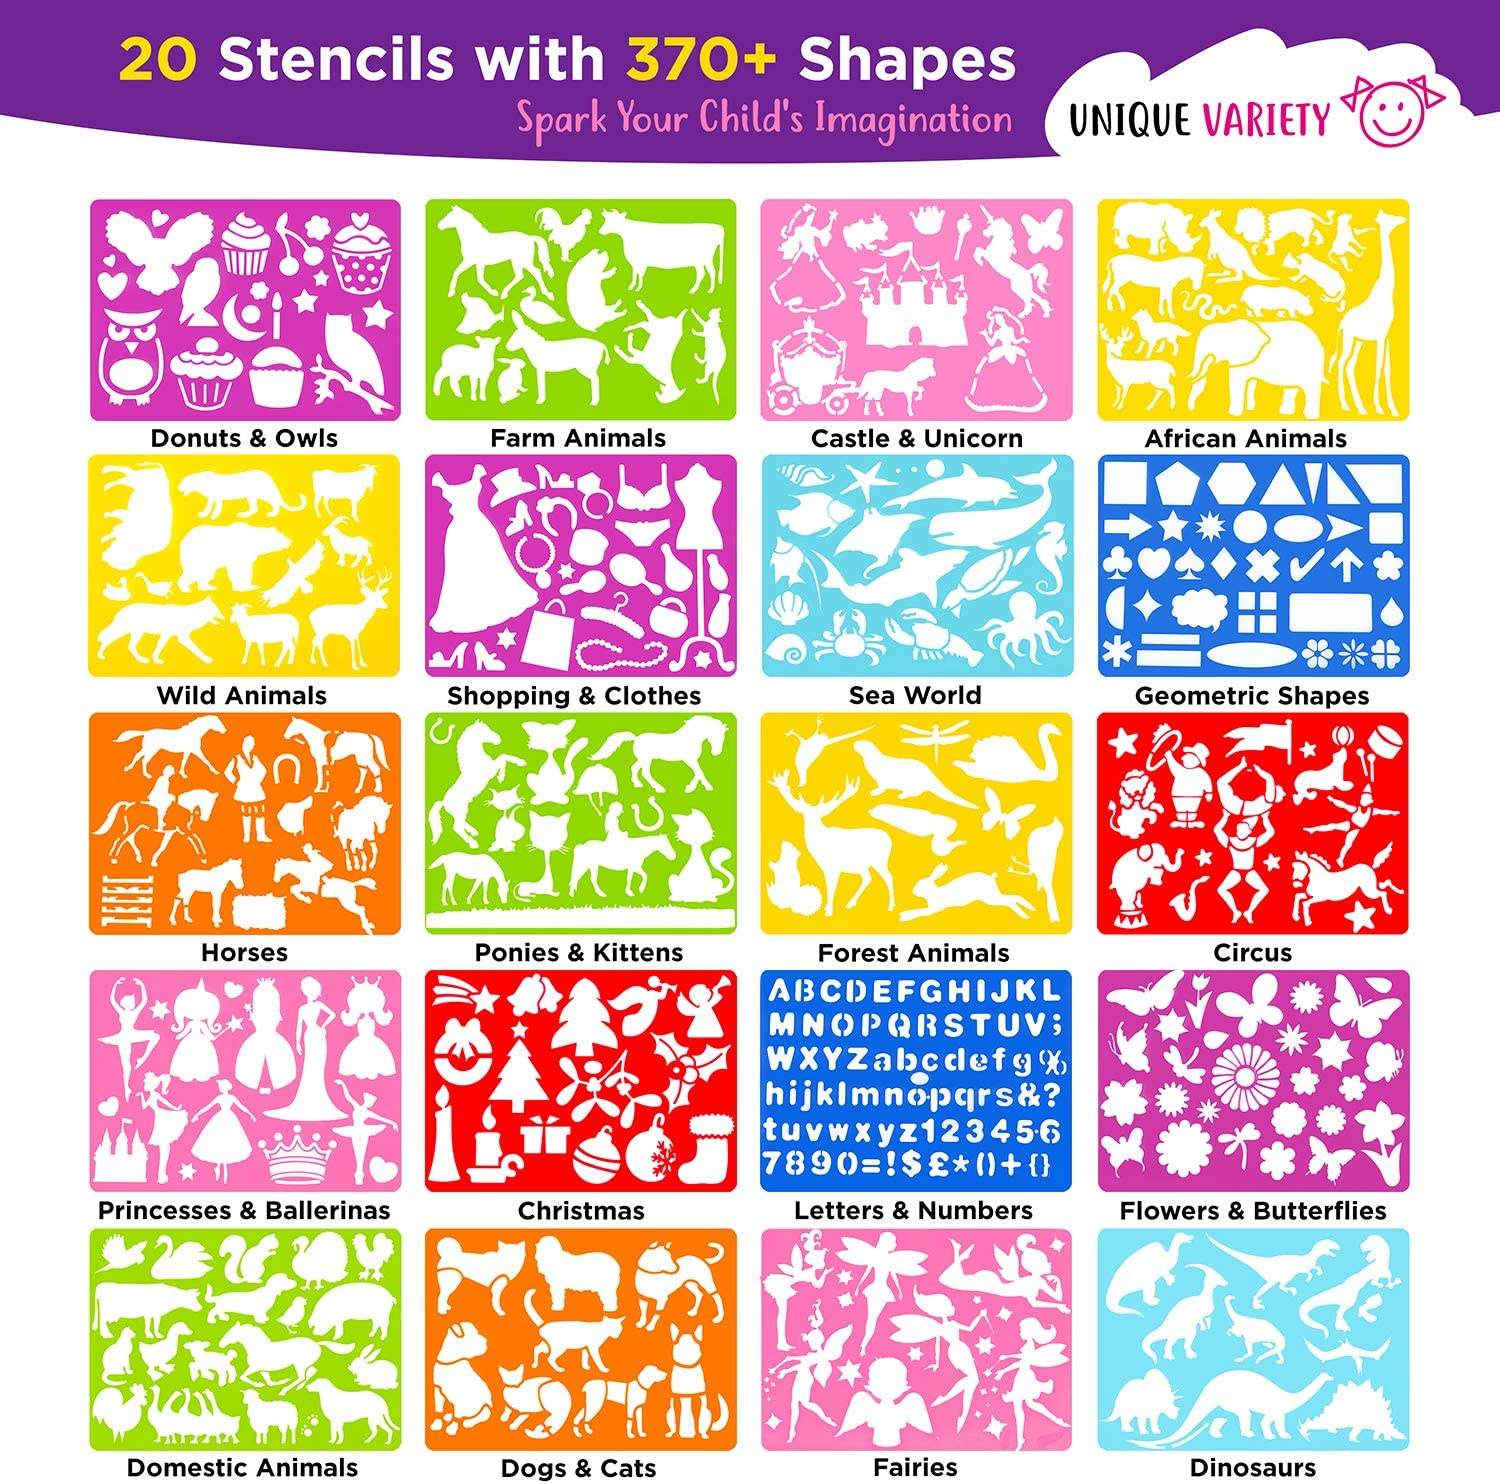 Mimtom Drawing Stencils for Kids and Girls Unicorn DIY Arts and Crafts Toy Set with Butterfly and Animal Stencils 58 PC Stencil Kit with 370+ Shapes to Draw Princess Fantasy Stories Flower